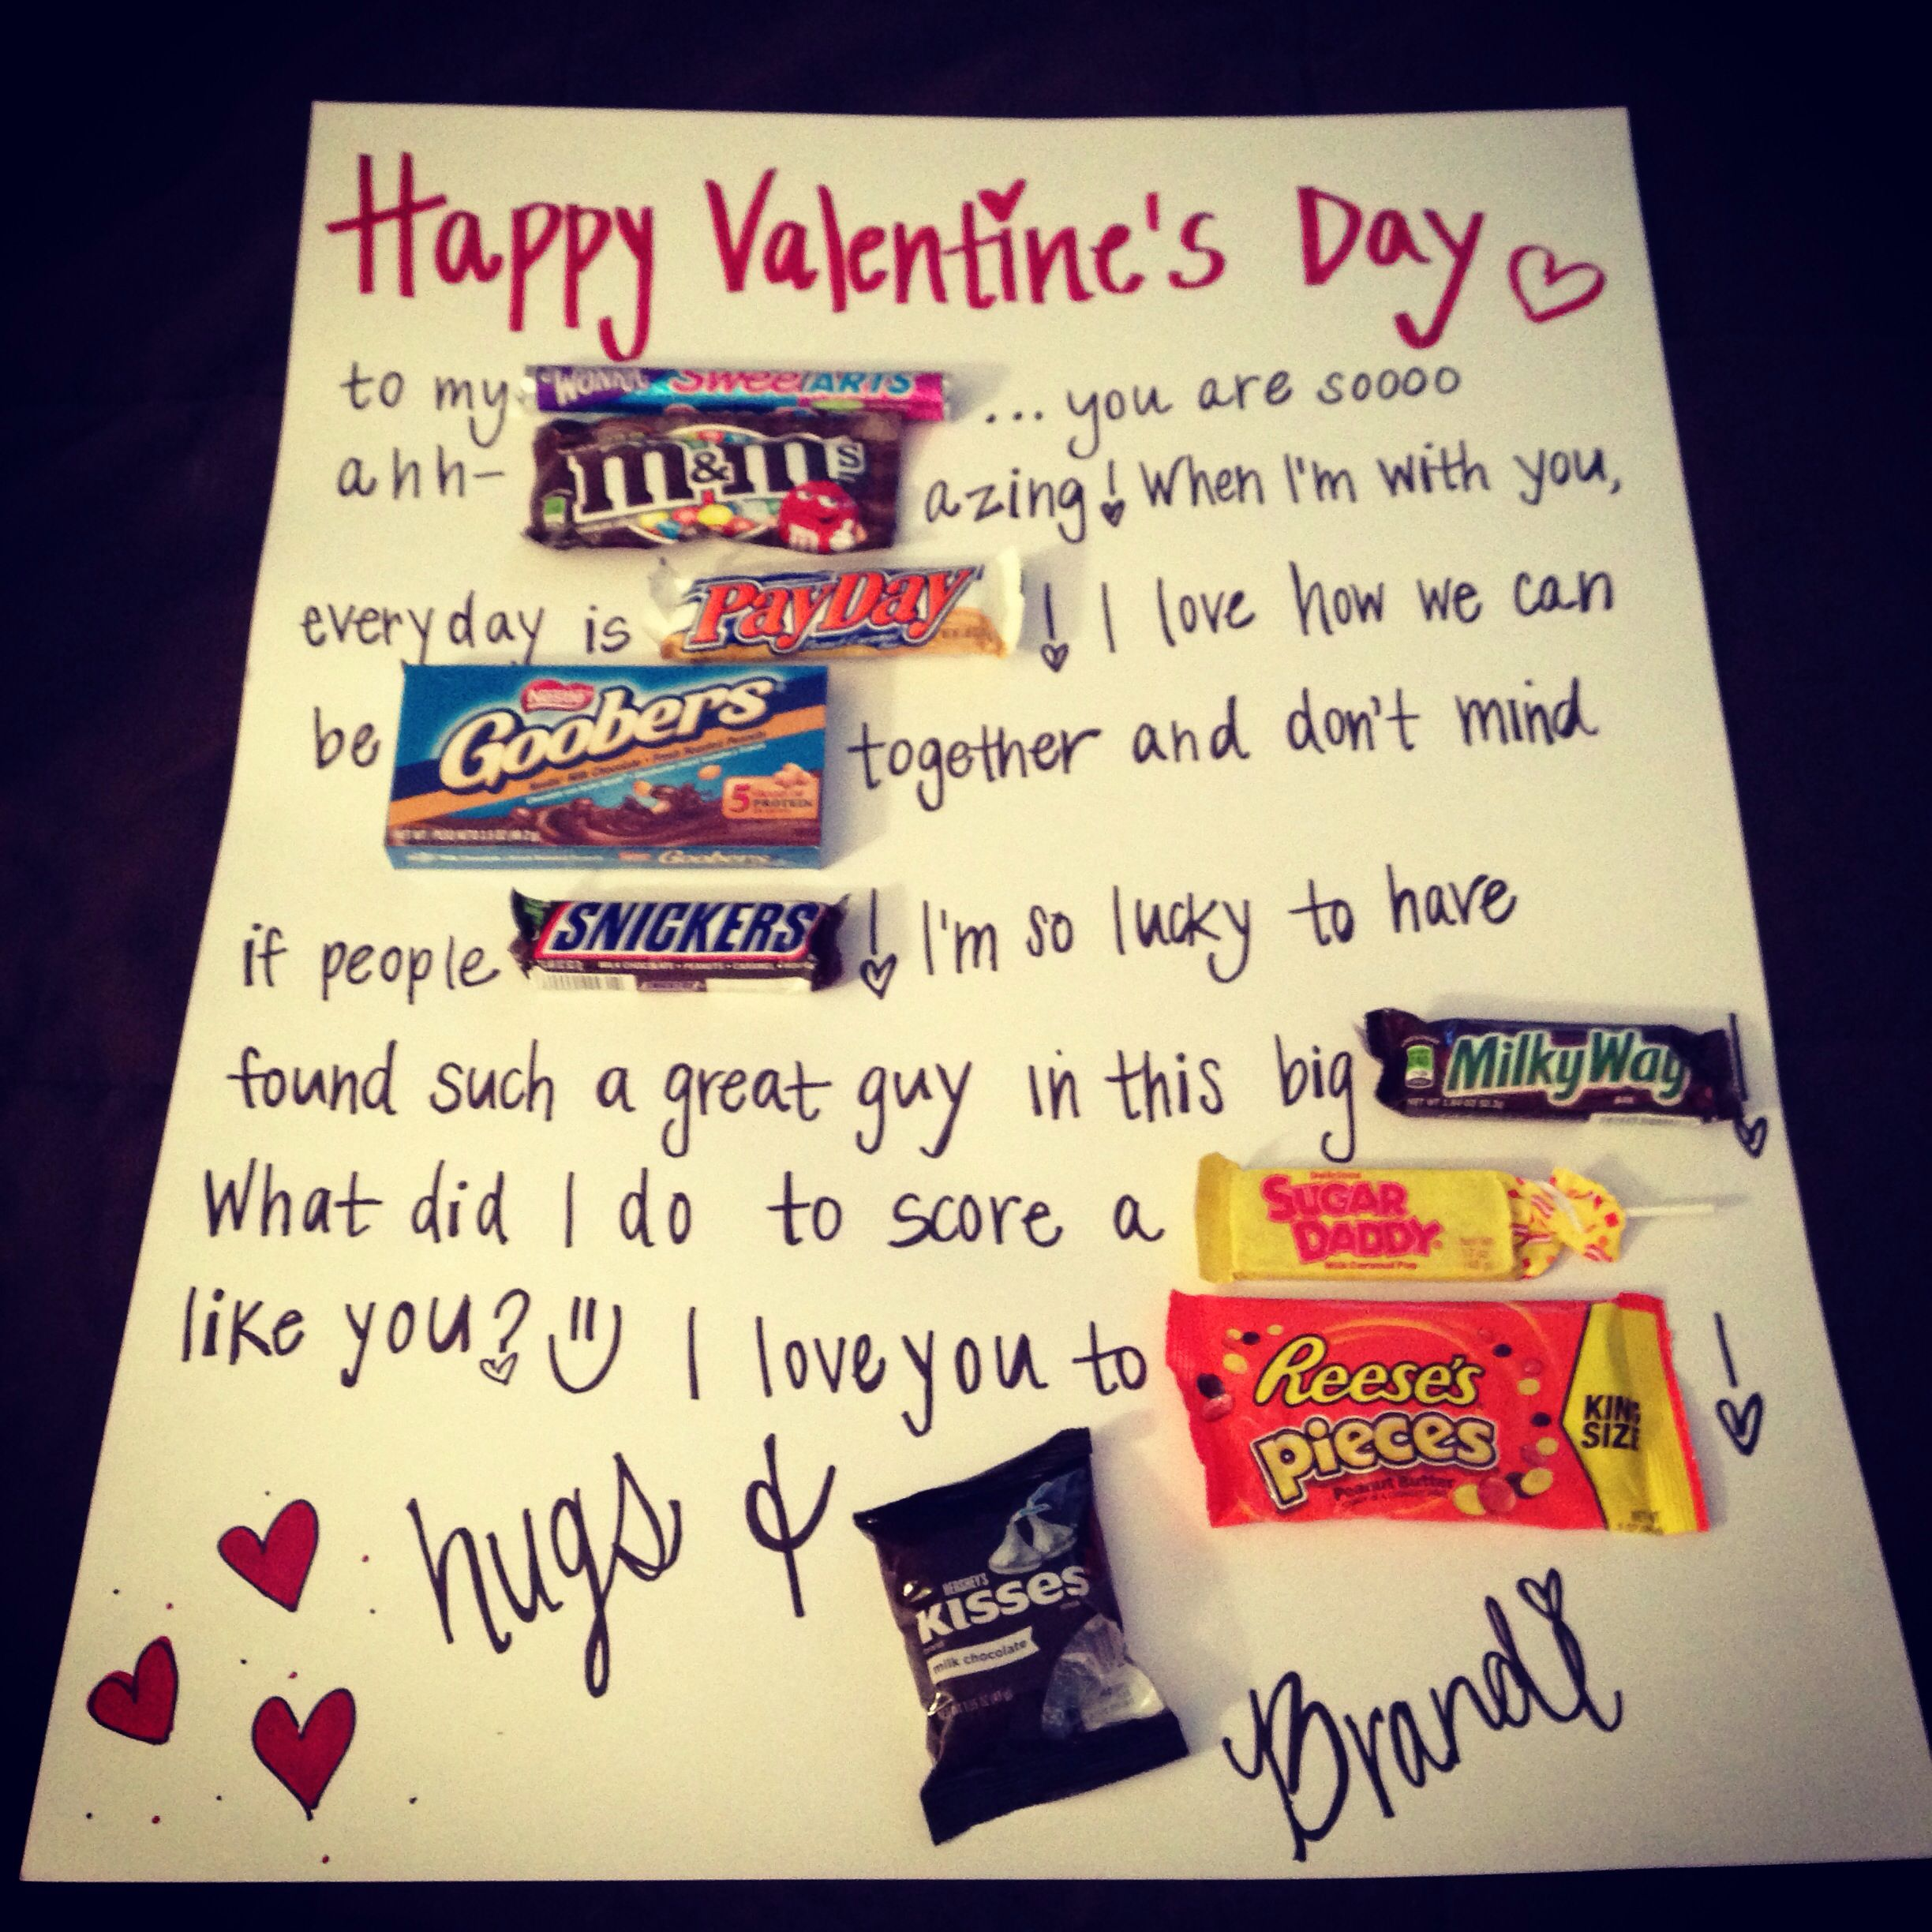 40 Romantic Diy Gift Ideas For Your Boyfriend You Can Make: Easy Diy Valentines Gift For Him!